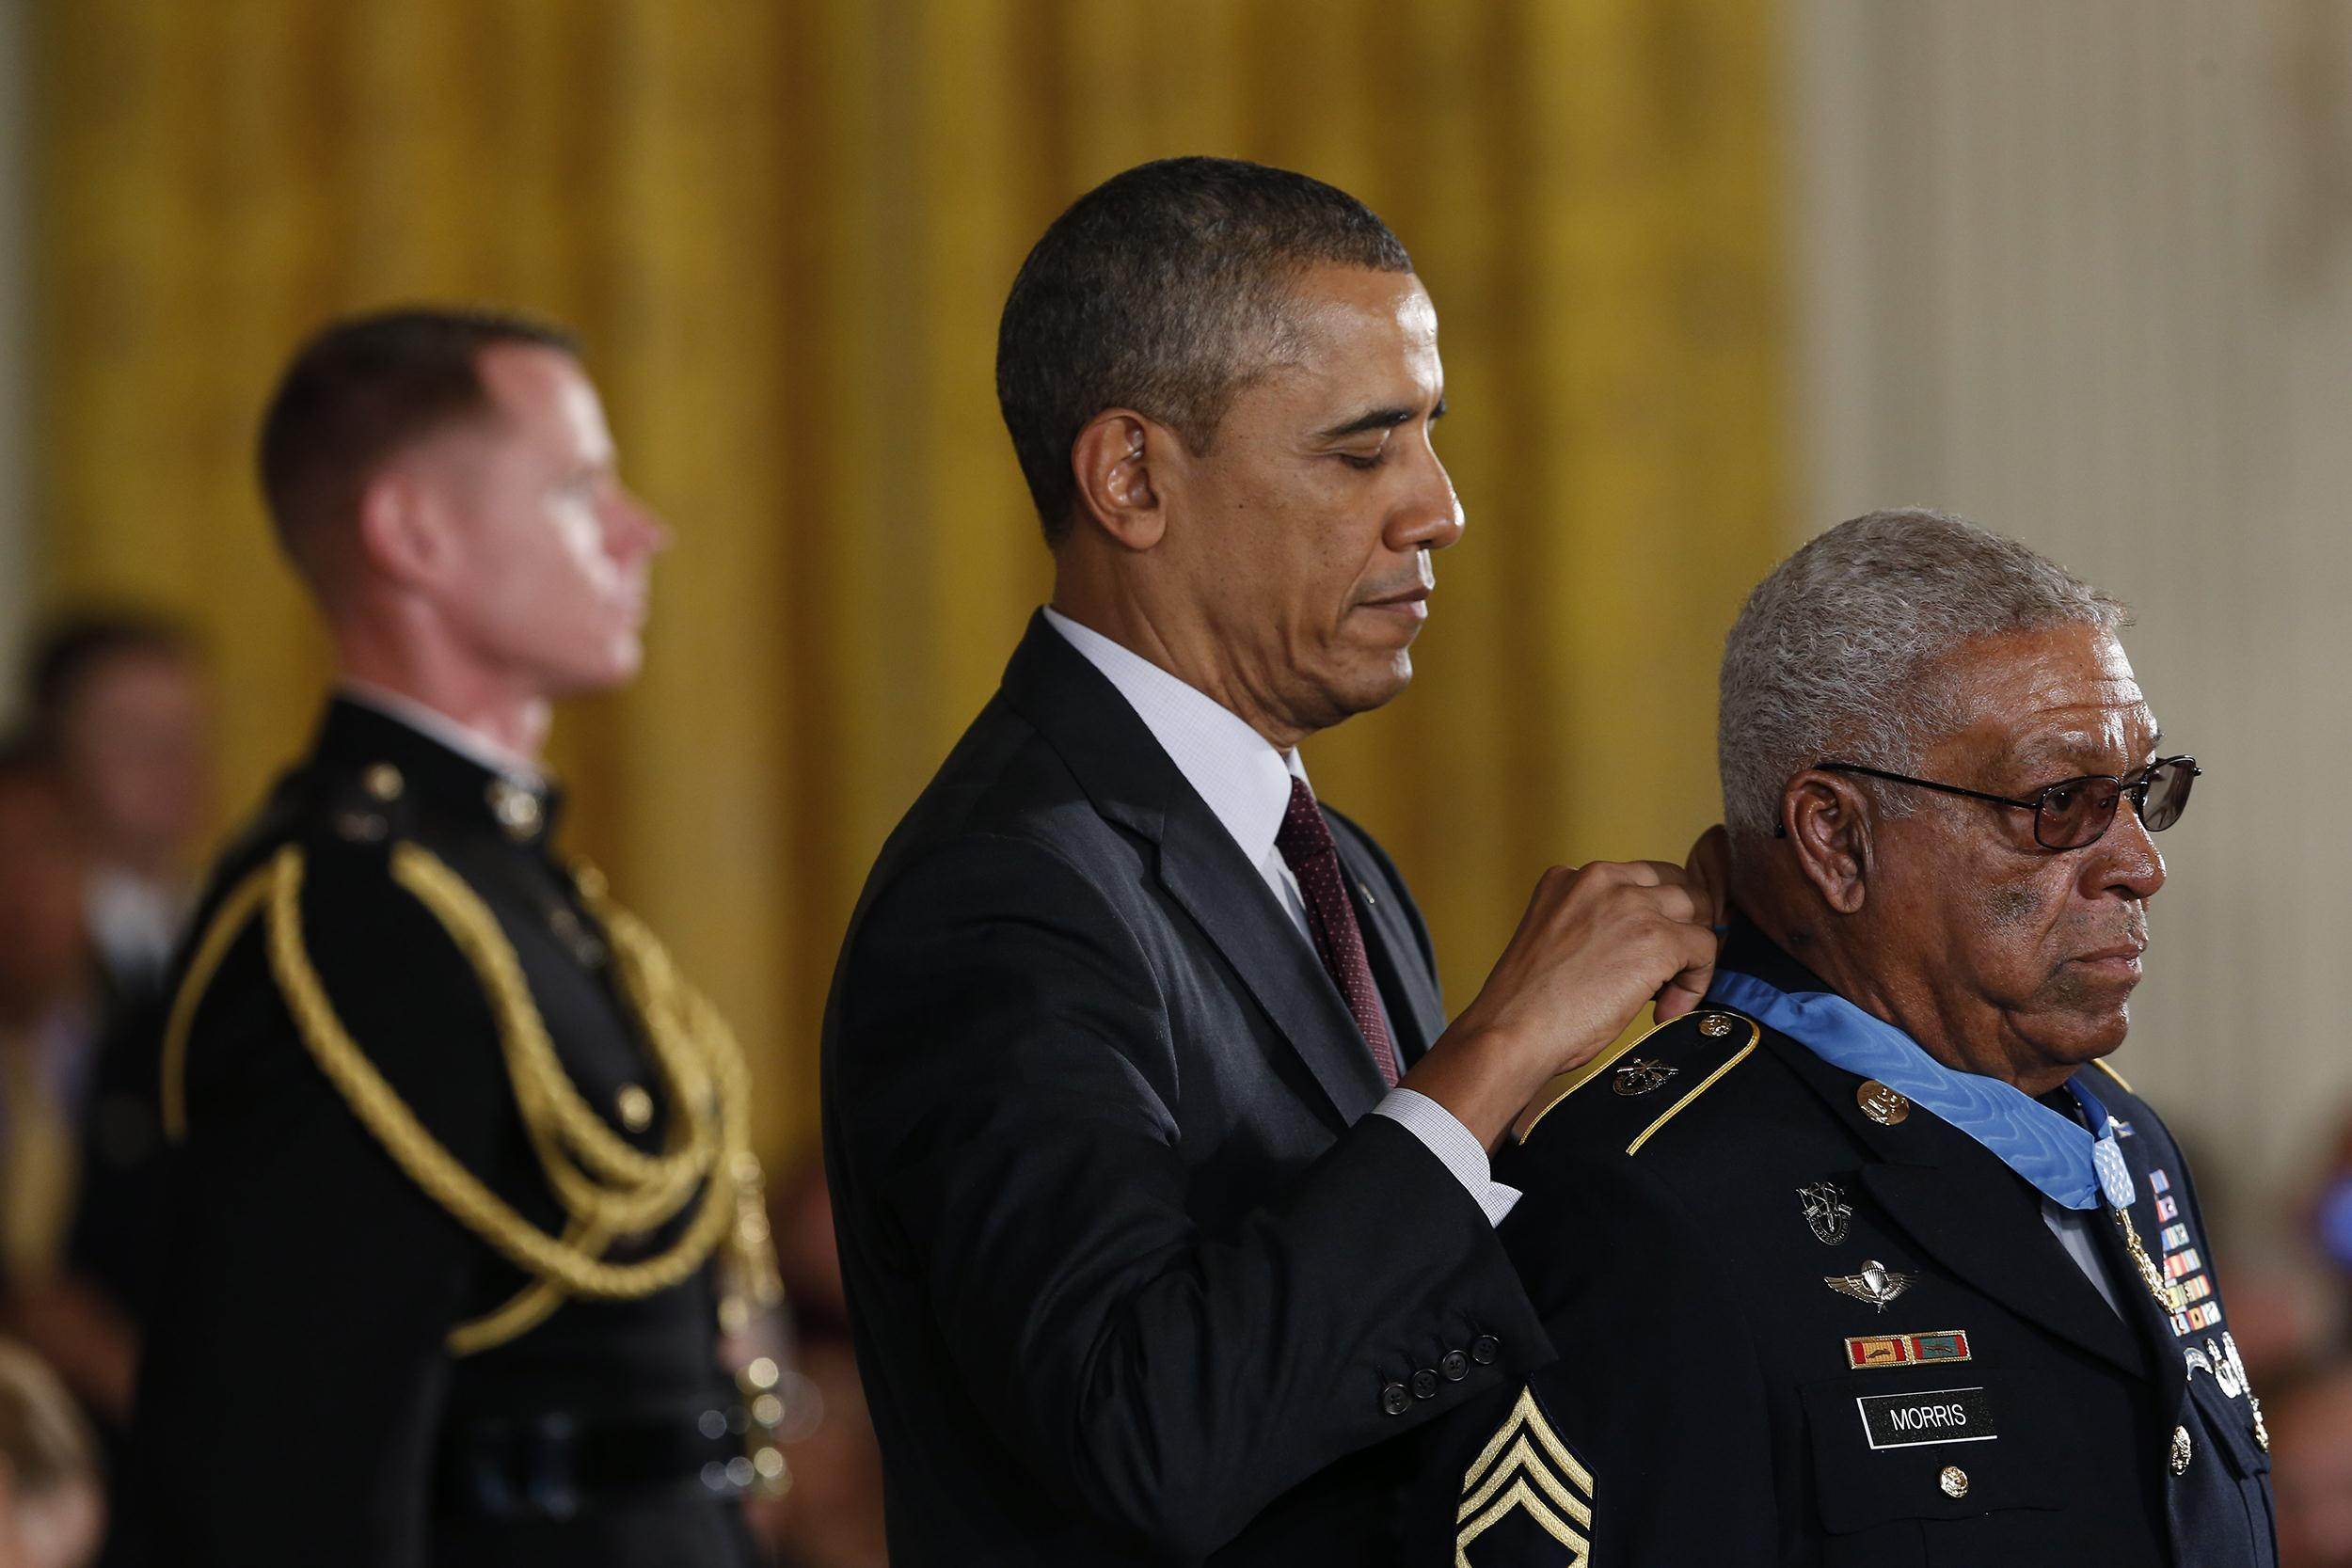 Image: U.S. Army Staff Sgt. (Ret.) Melvin Morris (R), a Vietnam War veteran, receives the Medal of Honor from U.S. President Barack Obama